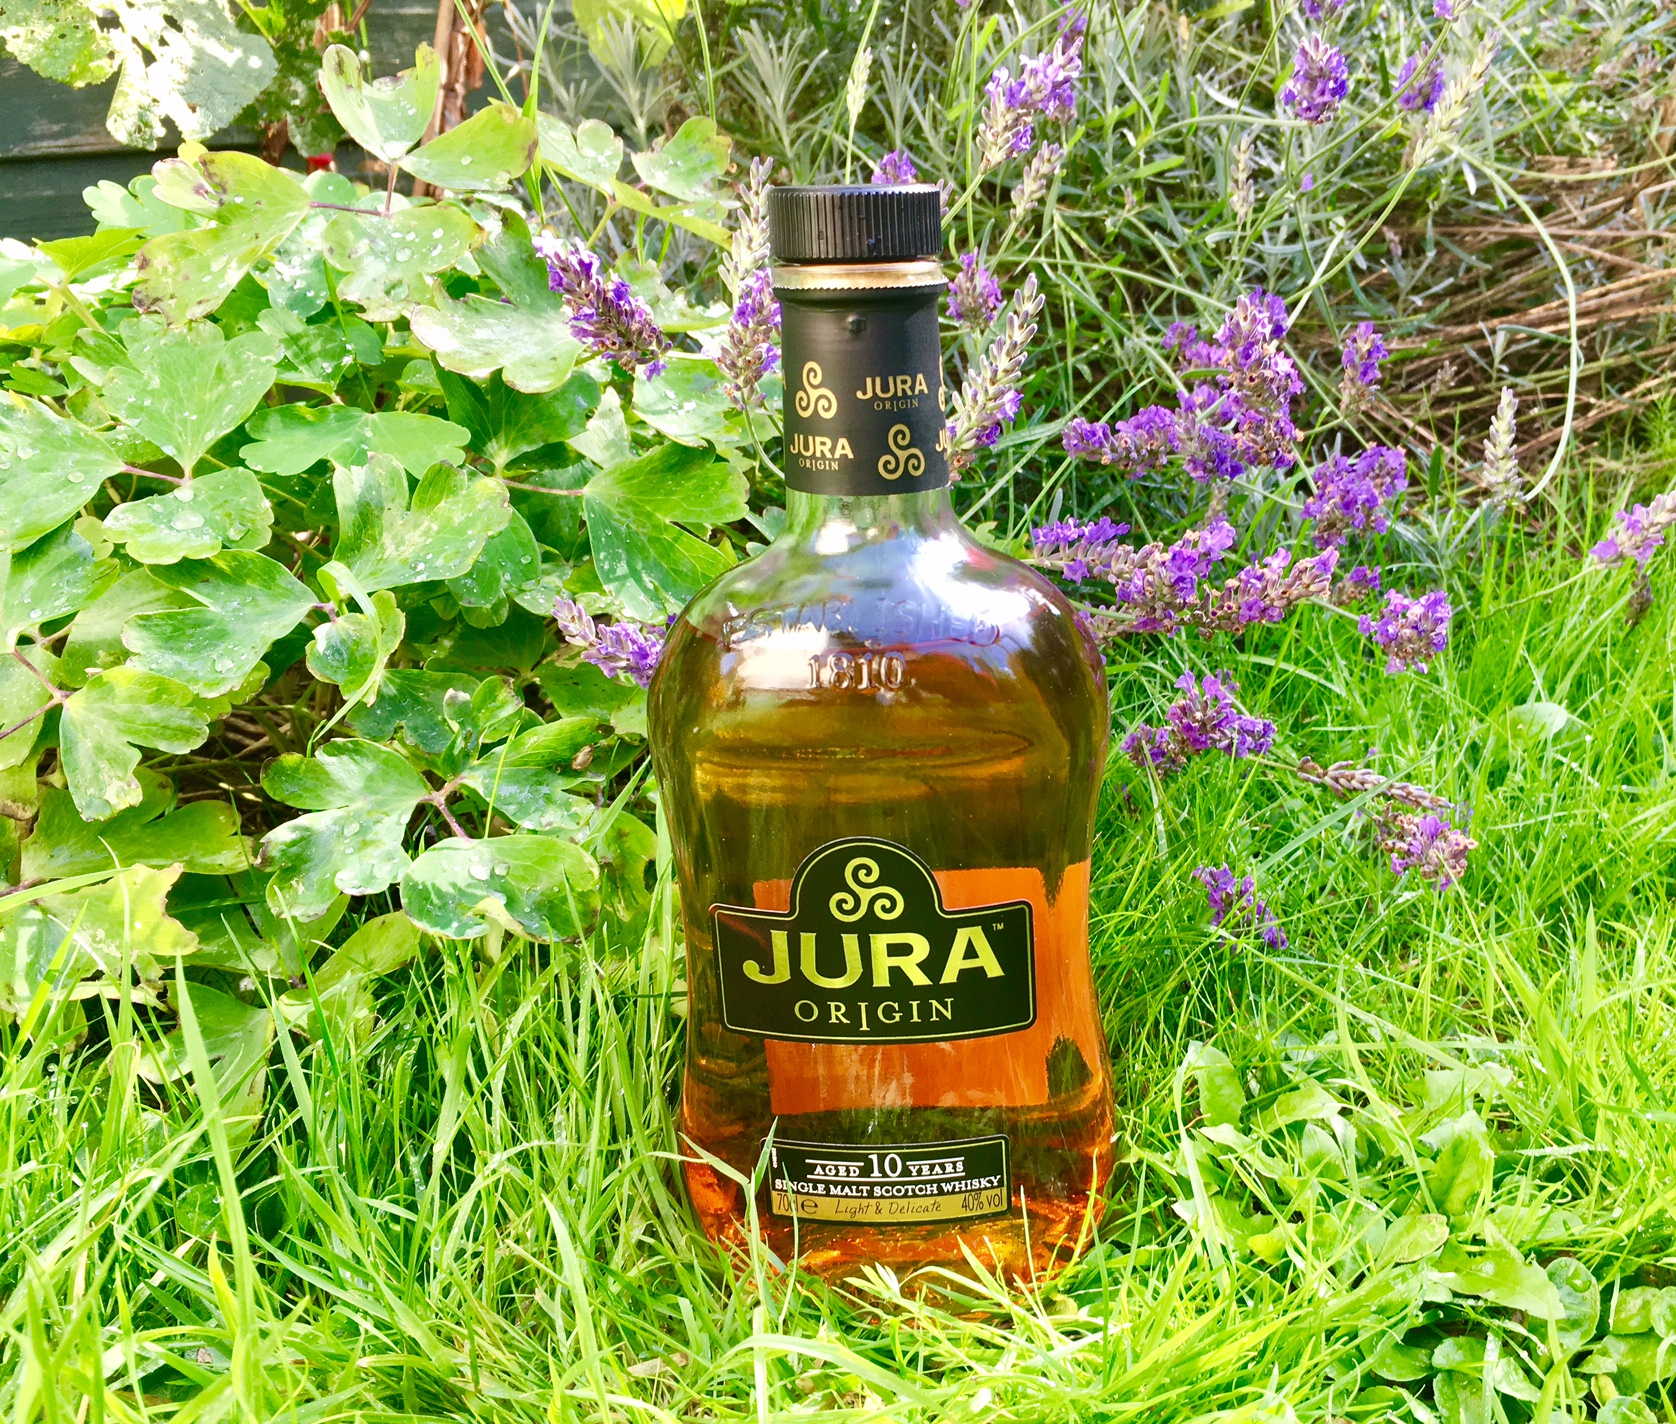 Jura single malt whisky